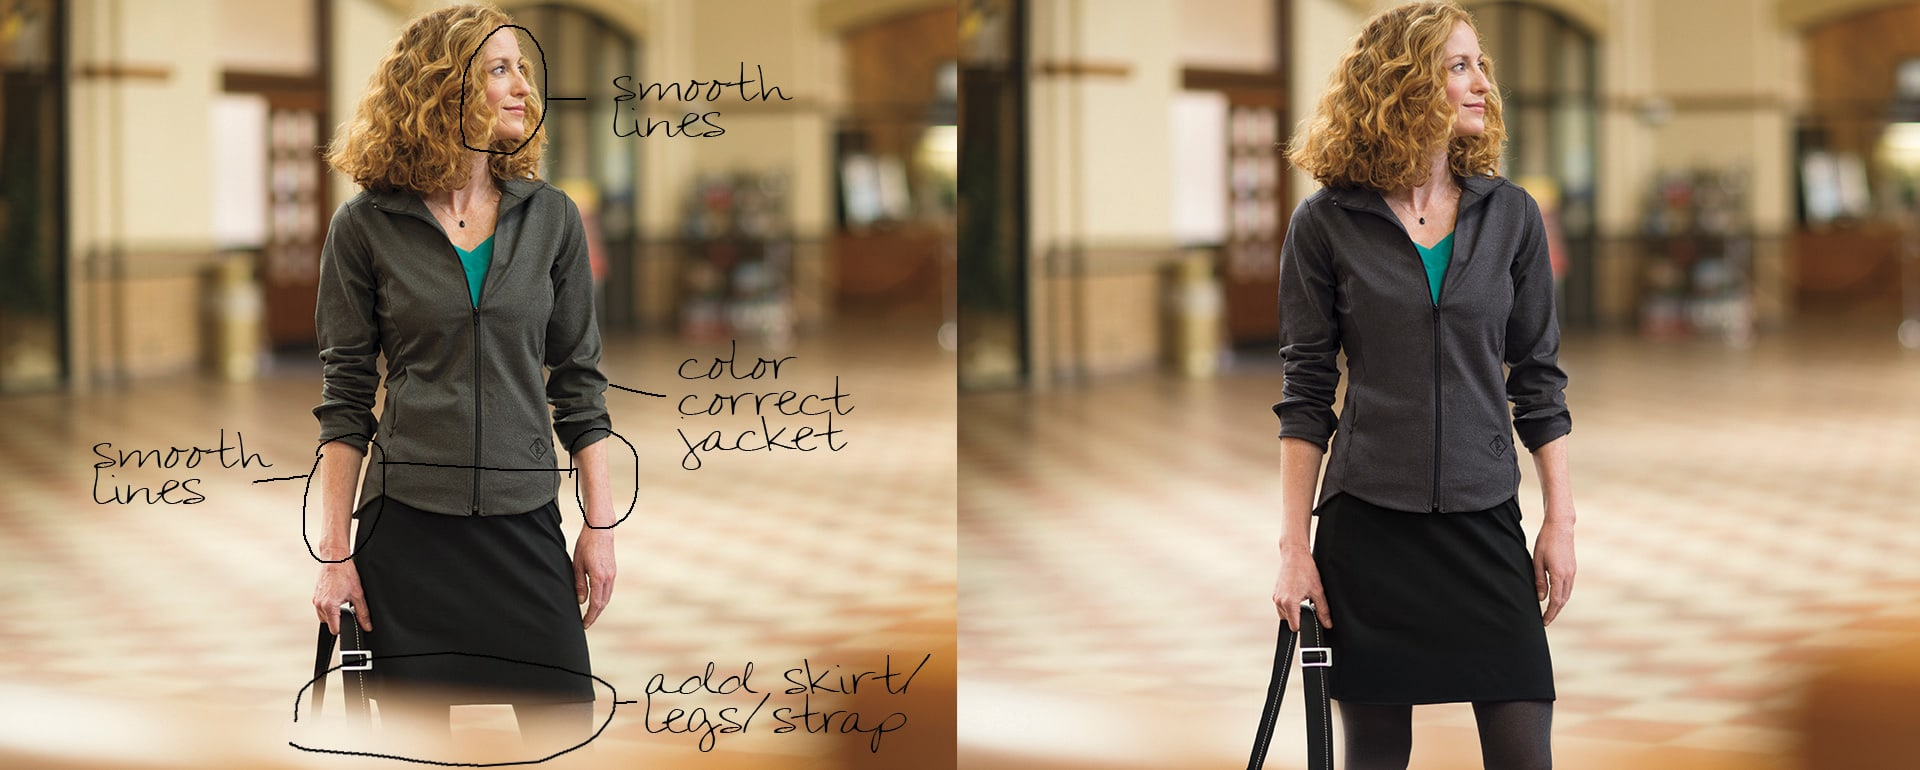 Apparel Product Photography photoshop